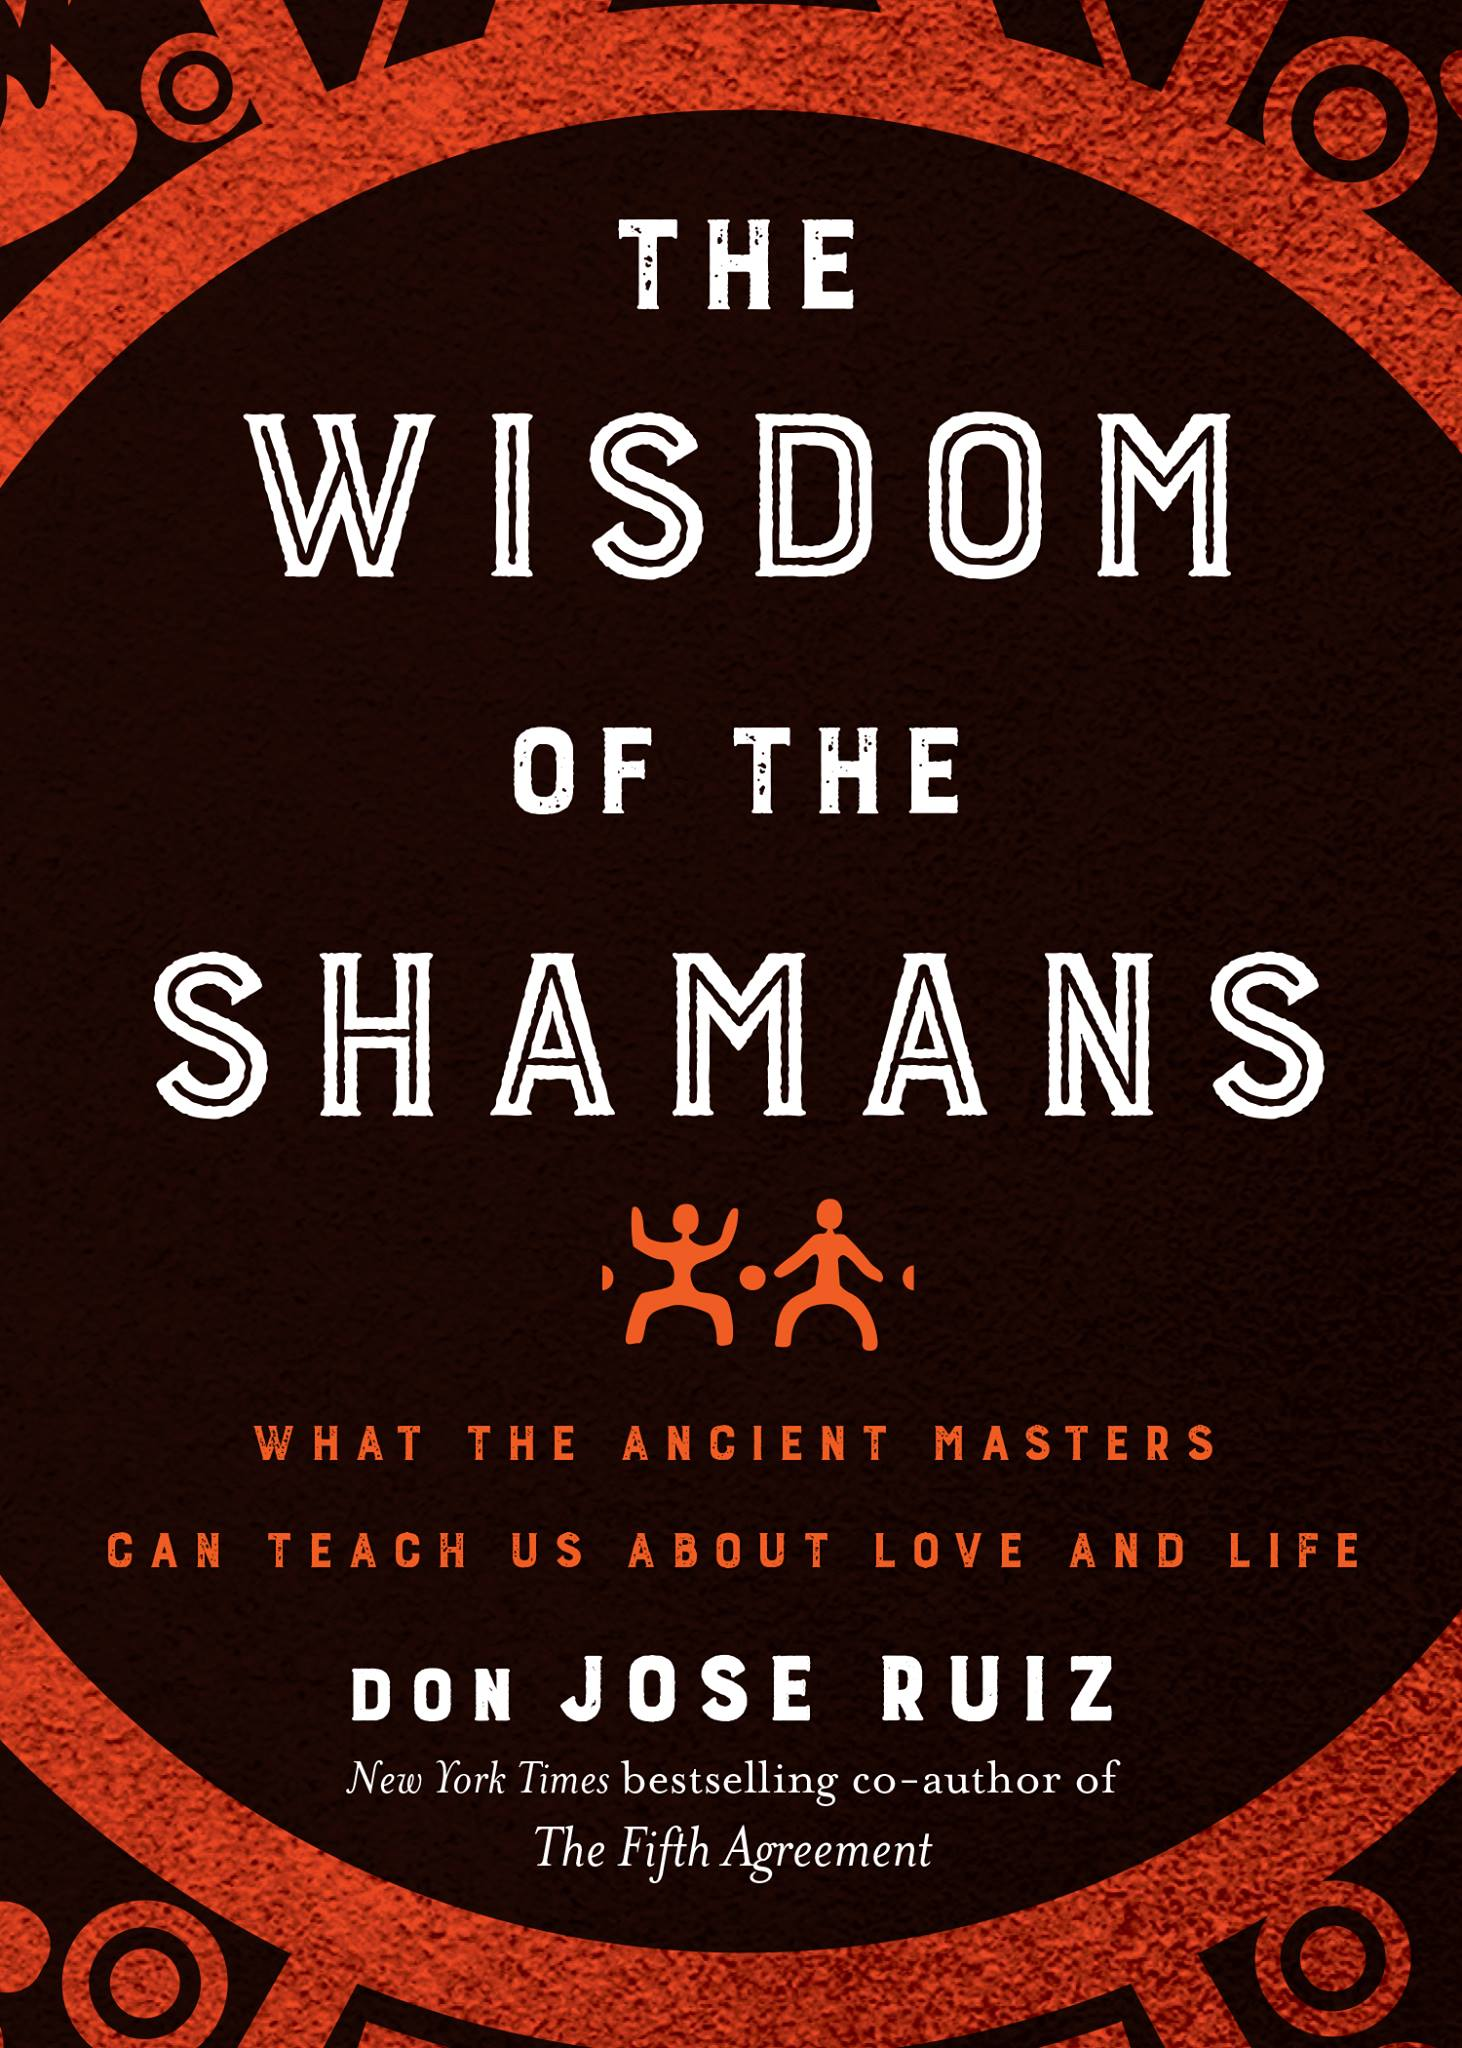 dJR Book Wisdom of the Shamans.jpg